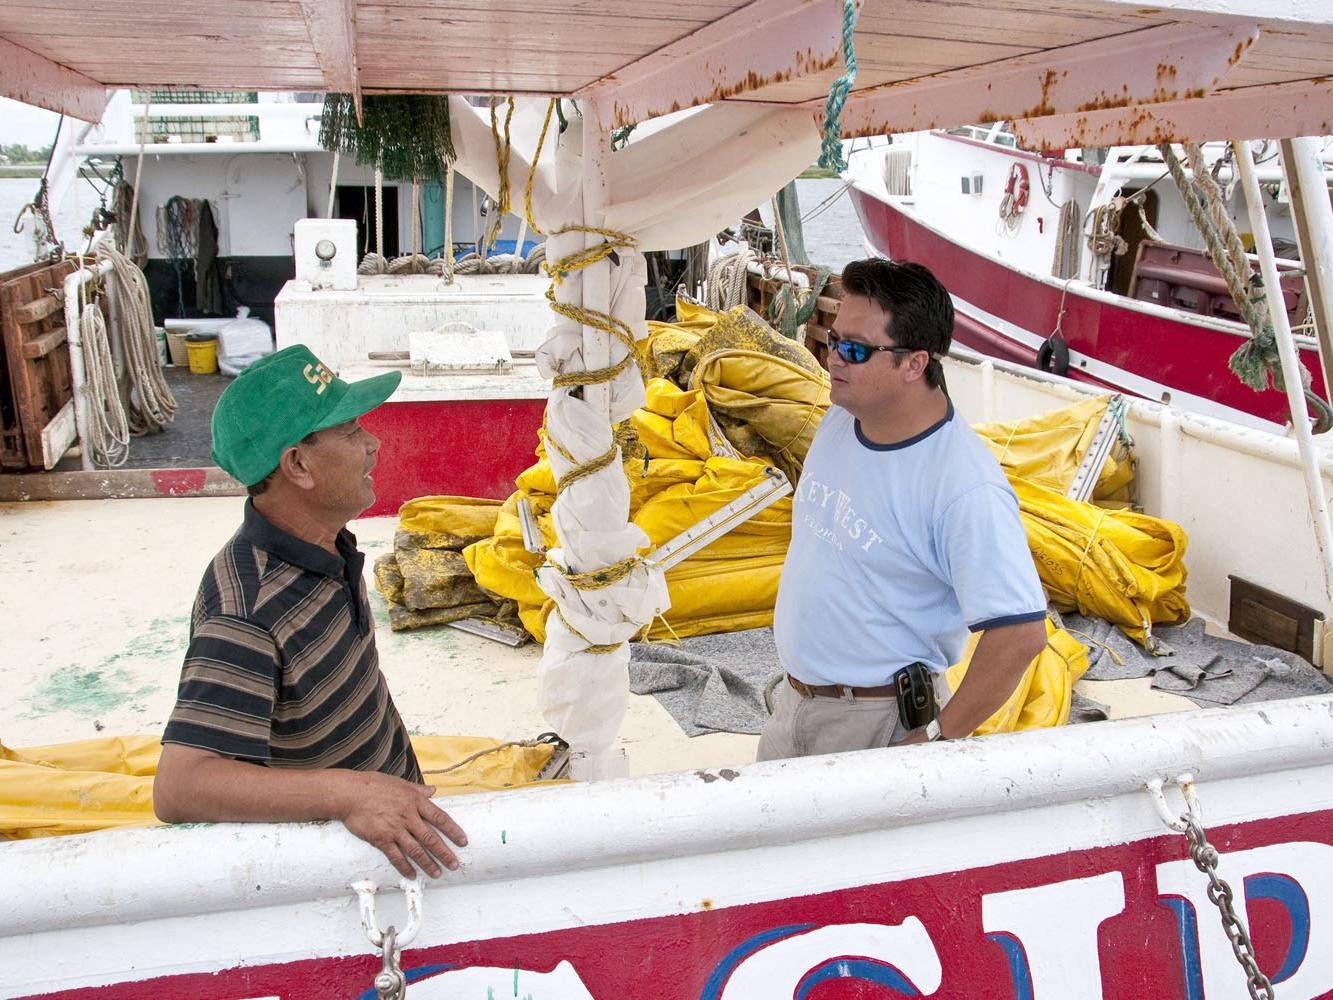 Phat Le, captain of the Mississippi III, discusses cleanup of the Deepwater Horizon oil spill with Extension Fisheries Technician Peter Nguyen. Many fishermen and shrimpers are working as oil spill cleanup contractors for BP. (Photo by Scott Corey)